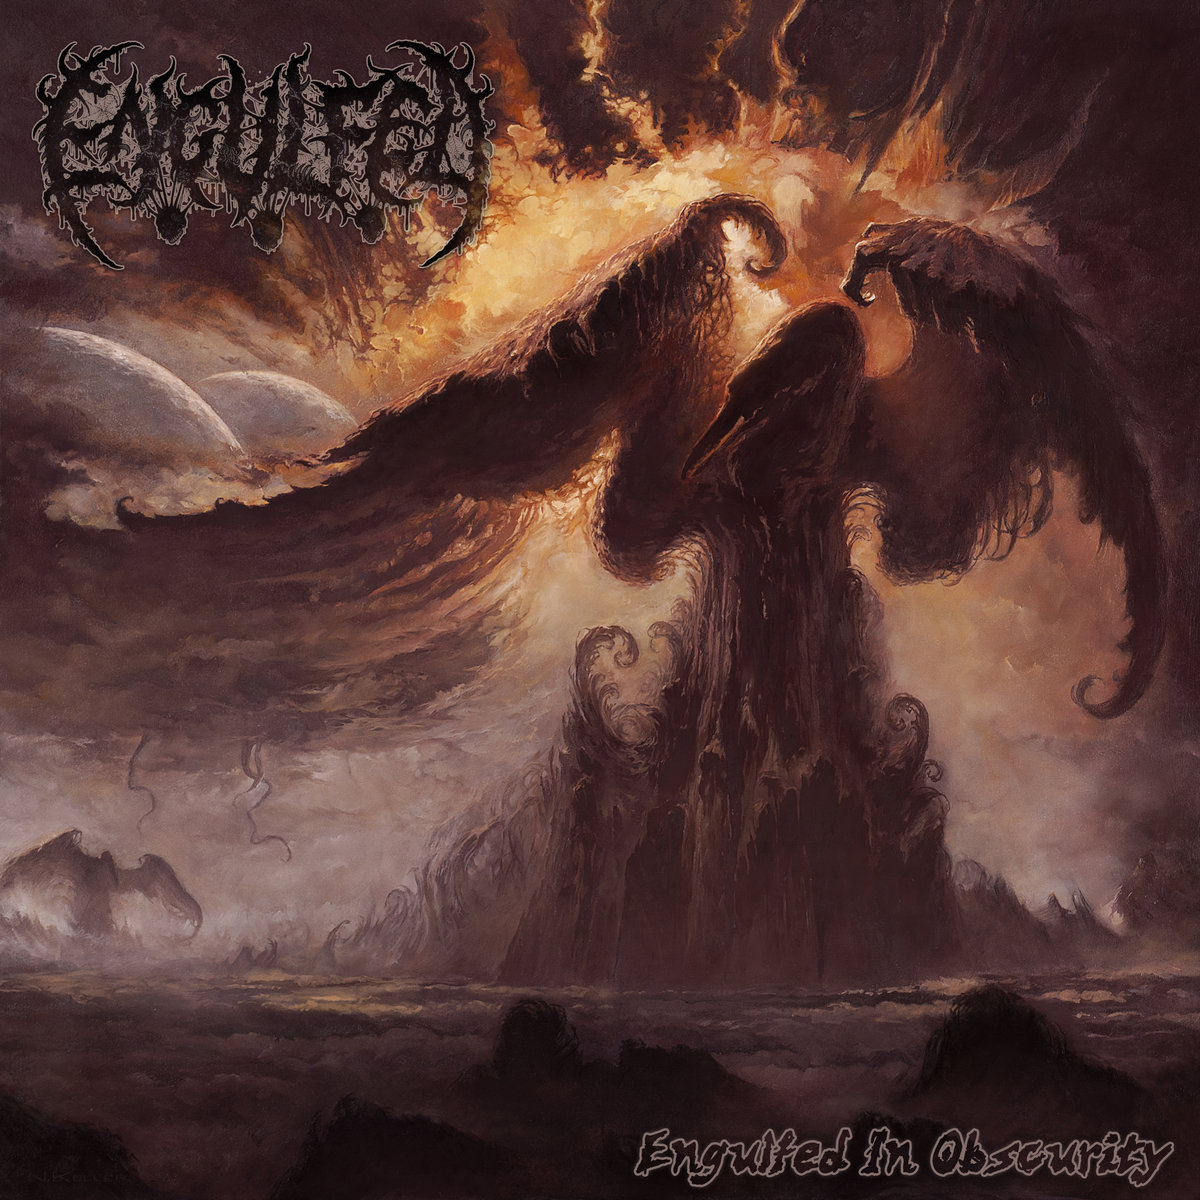 Engulfed - Engulfed in Obscurity